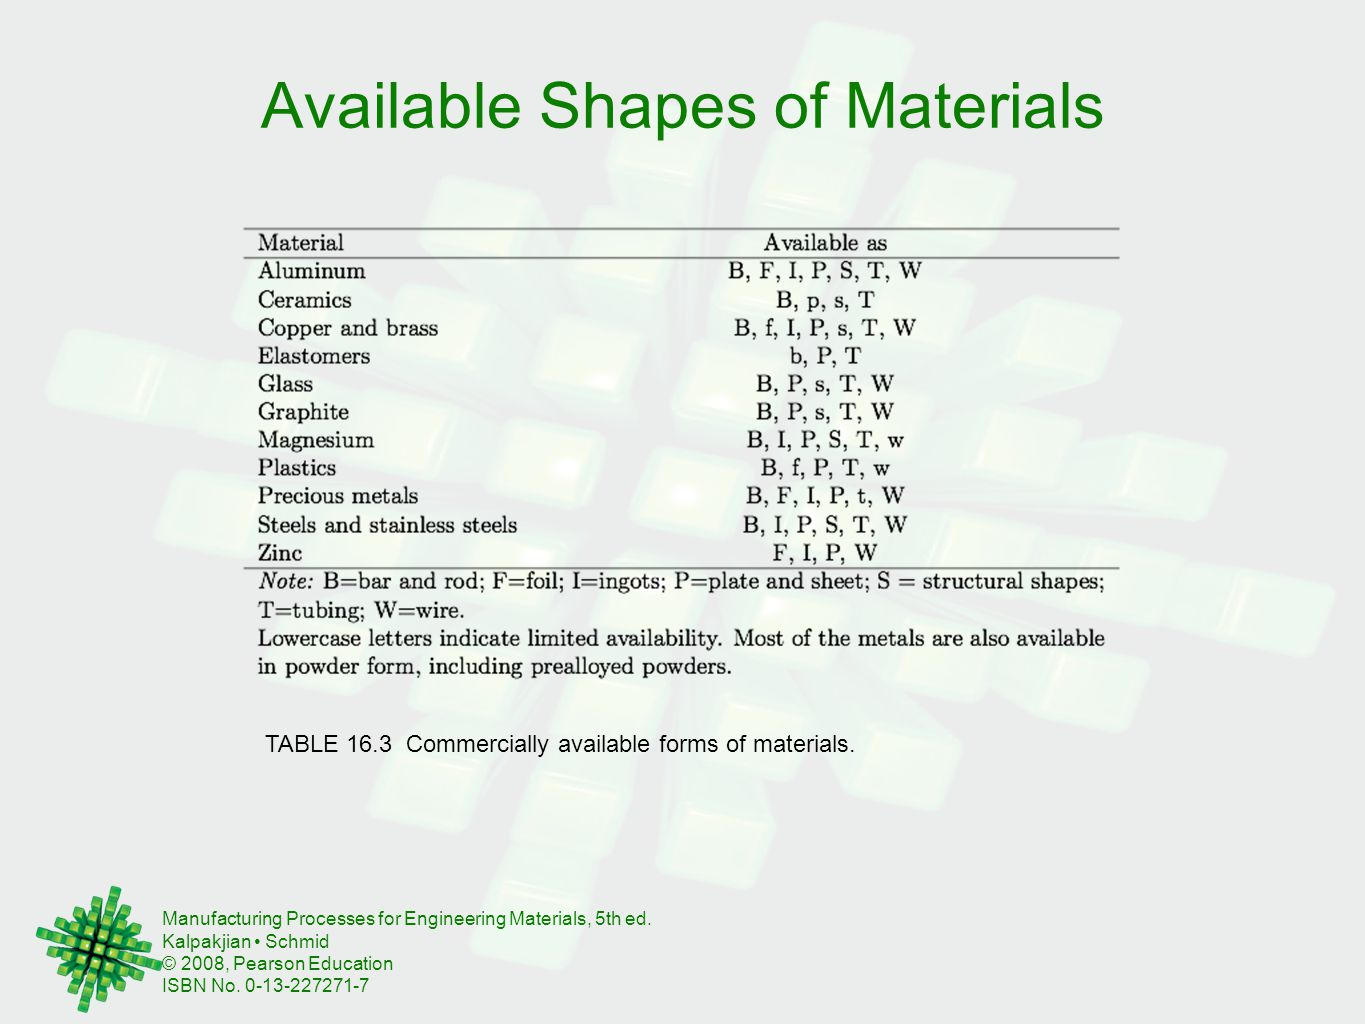 Available Shapes of Materials